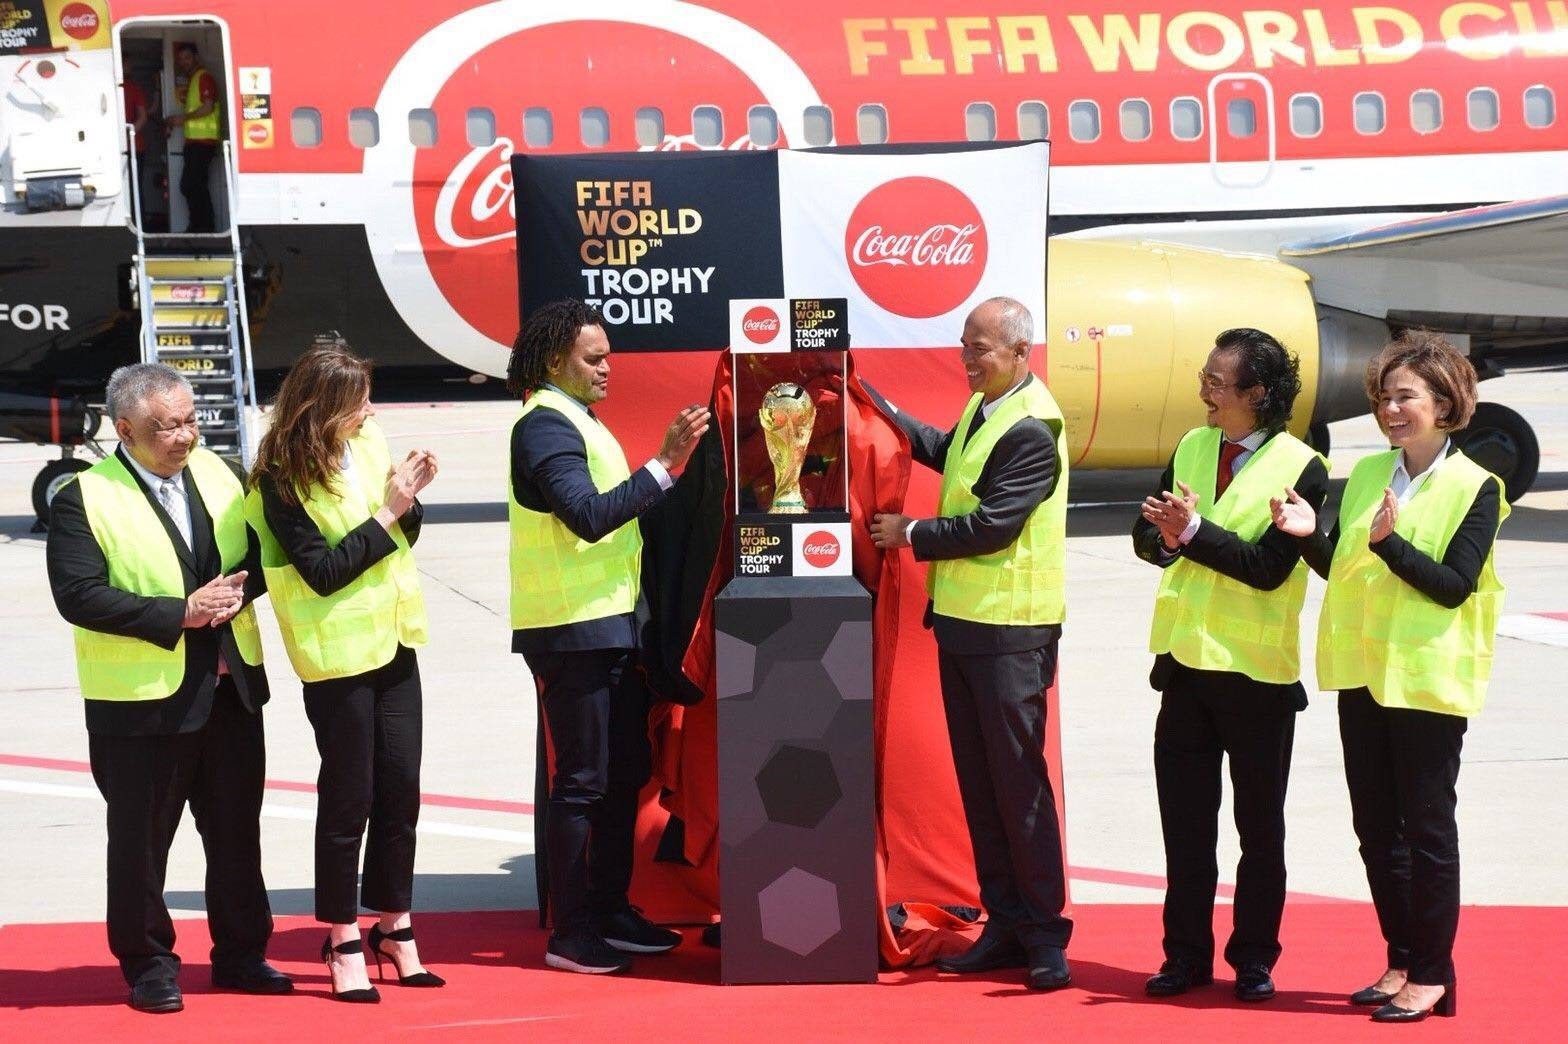 FIFA World Cup lands in Phuket | Thaiger